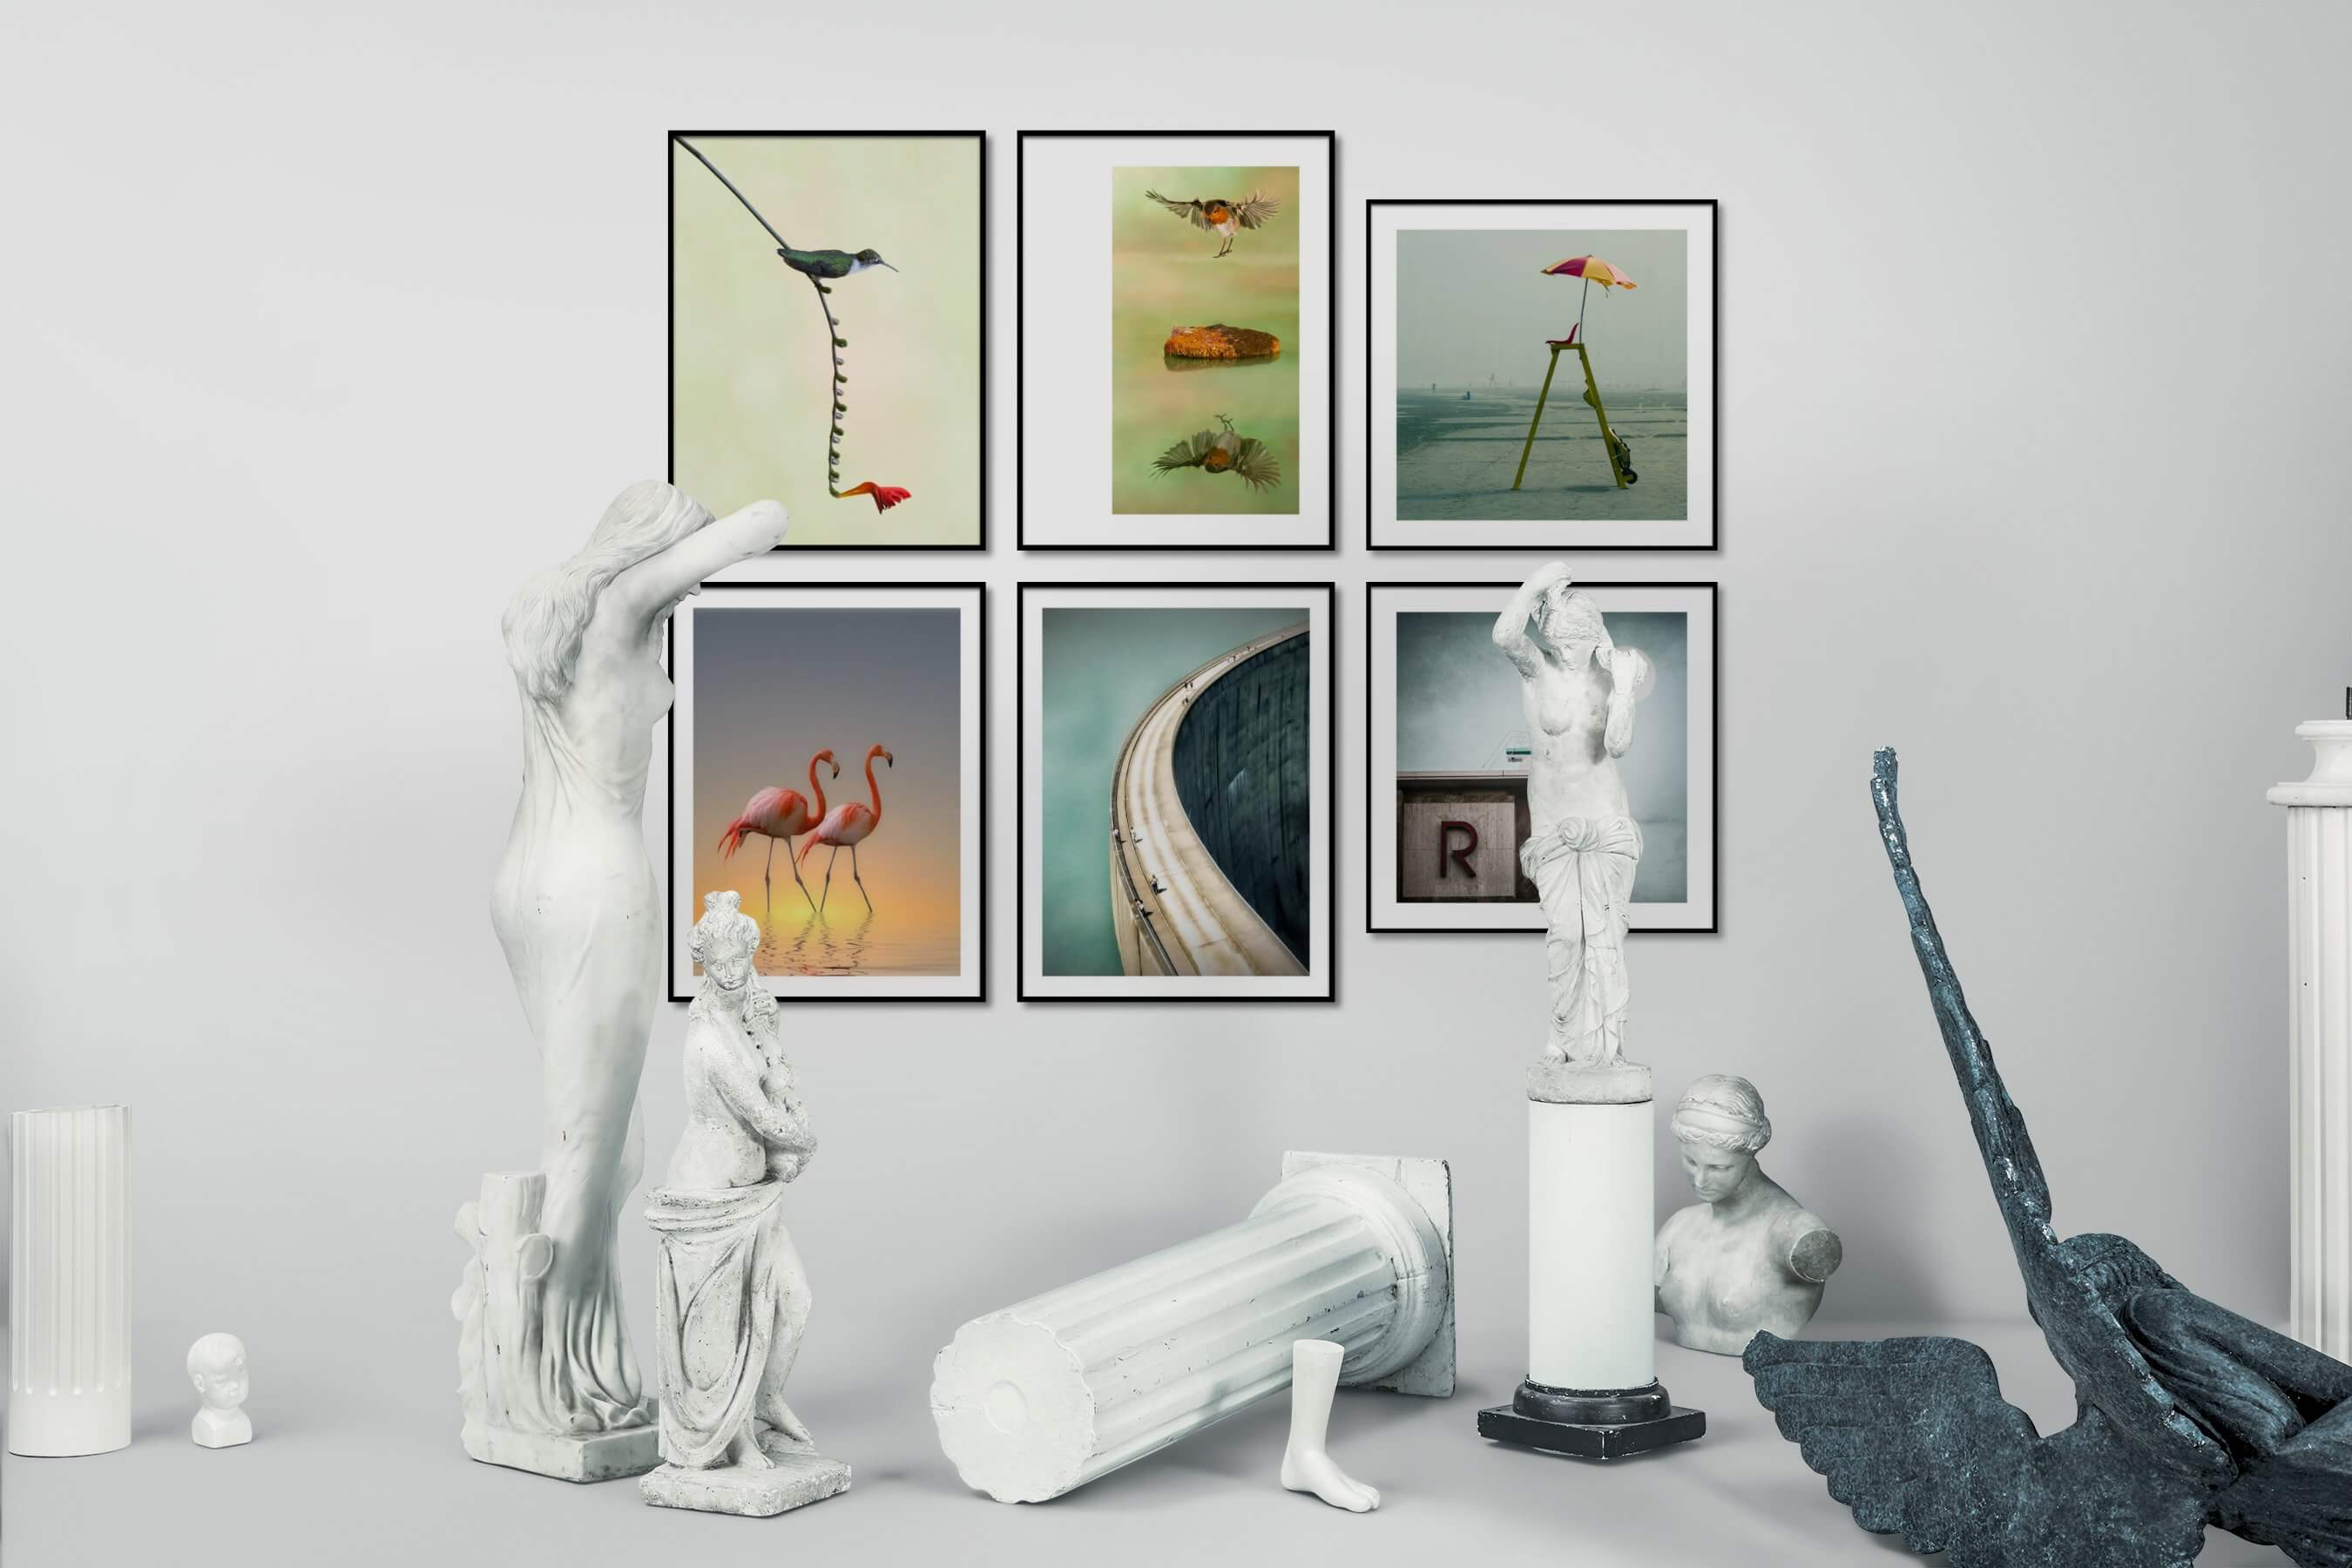 Gallery wall idea with six framed pictures arranged on a wall depicting For the Minimalist, Animals, Flowers & Plants, Mindfulness, For the Moderate, Beach & Water, and Vintage